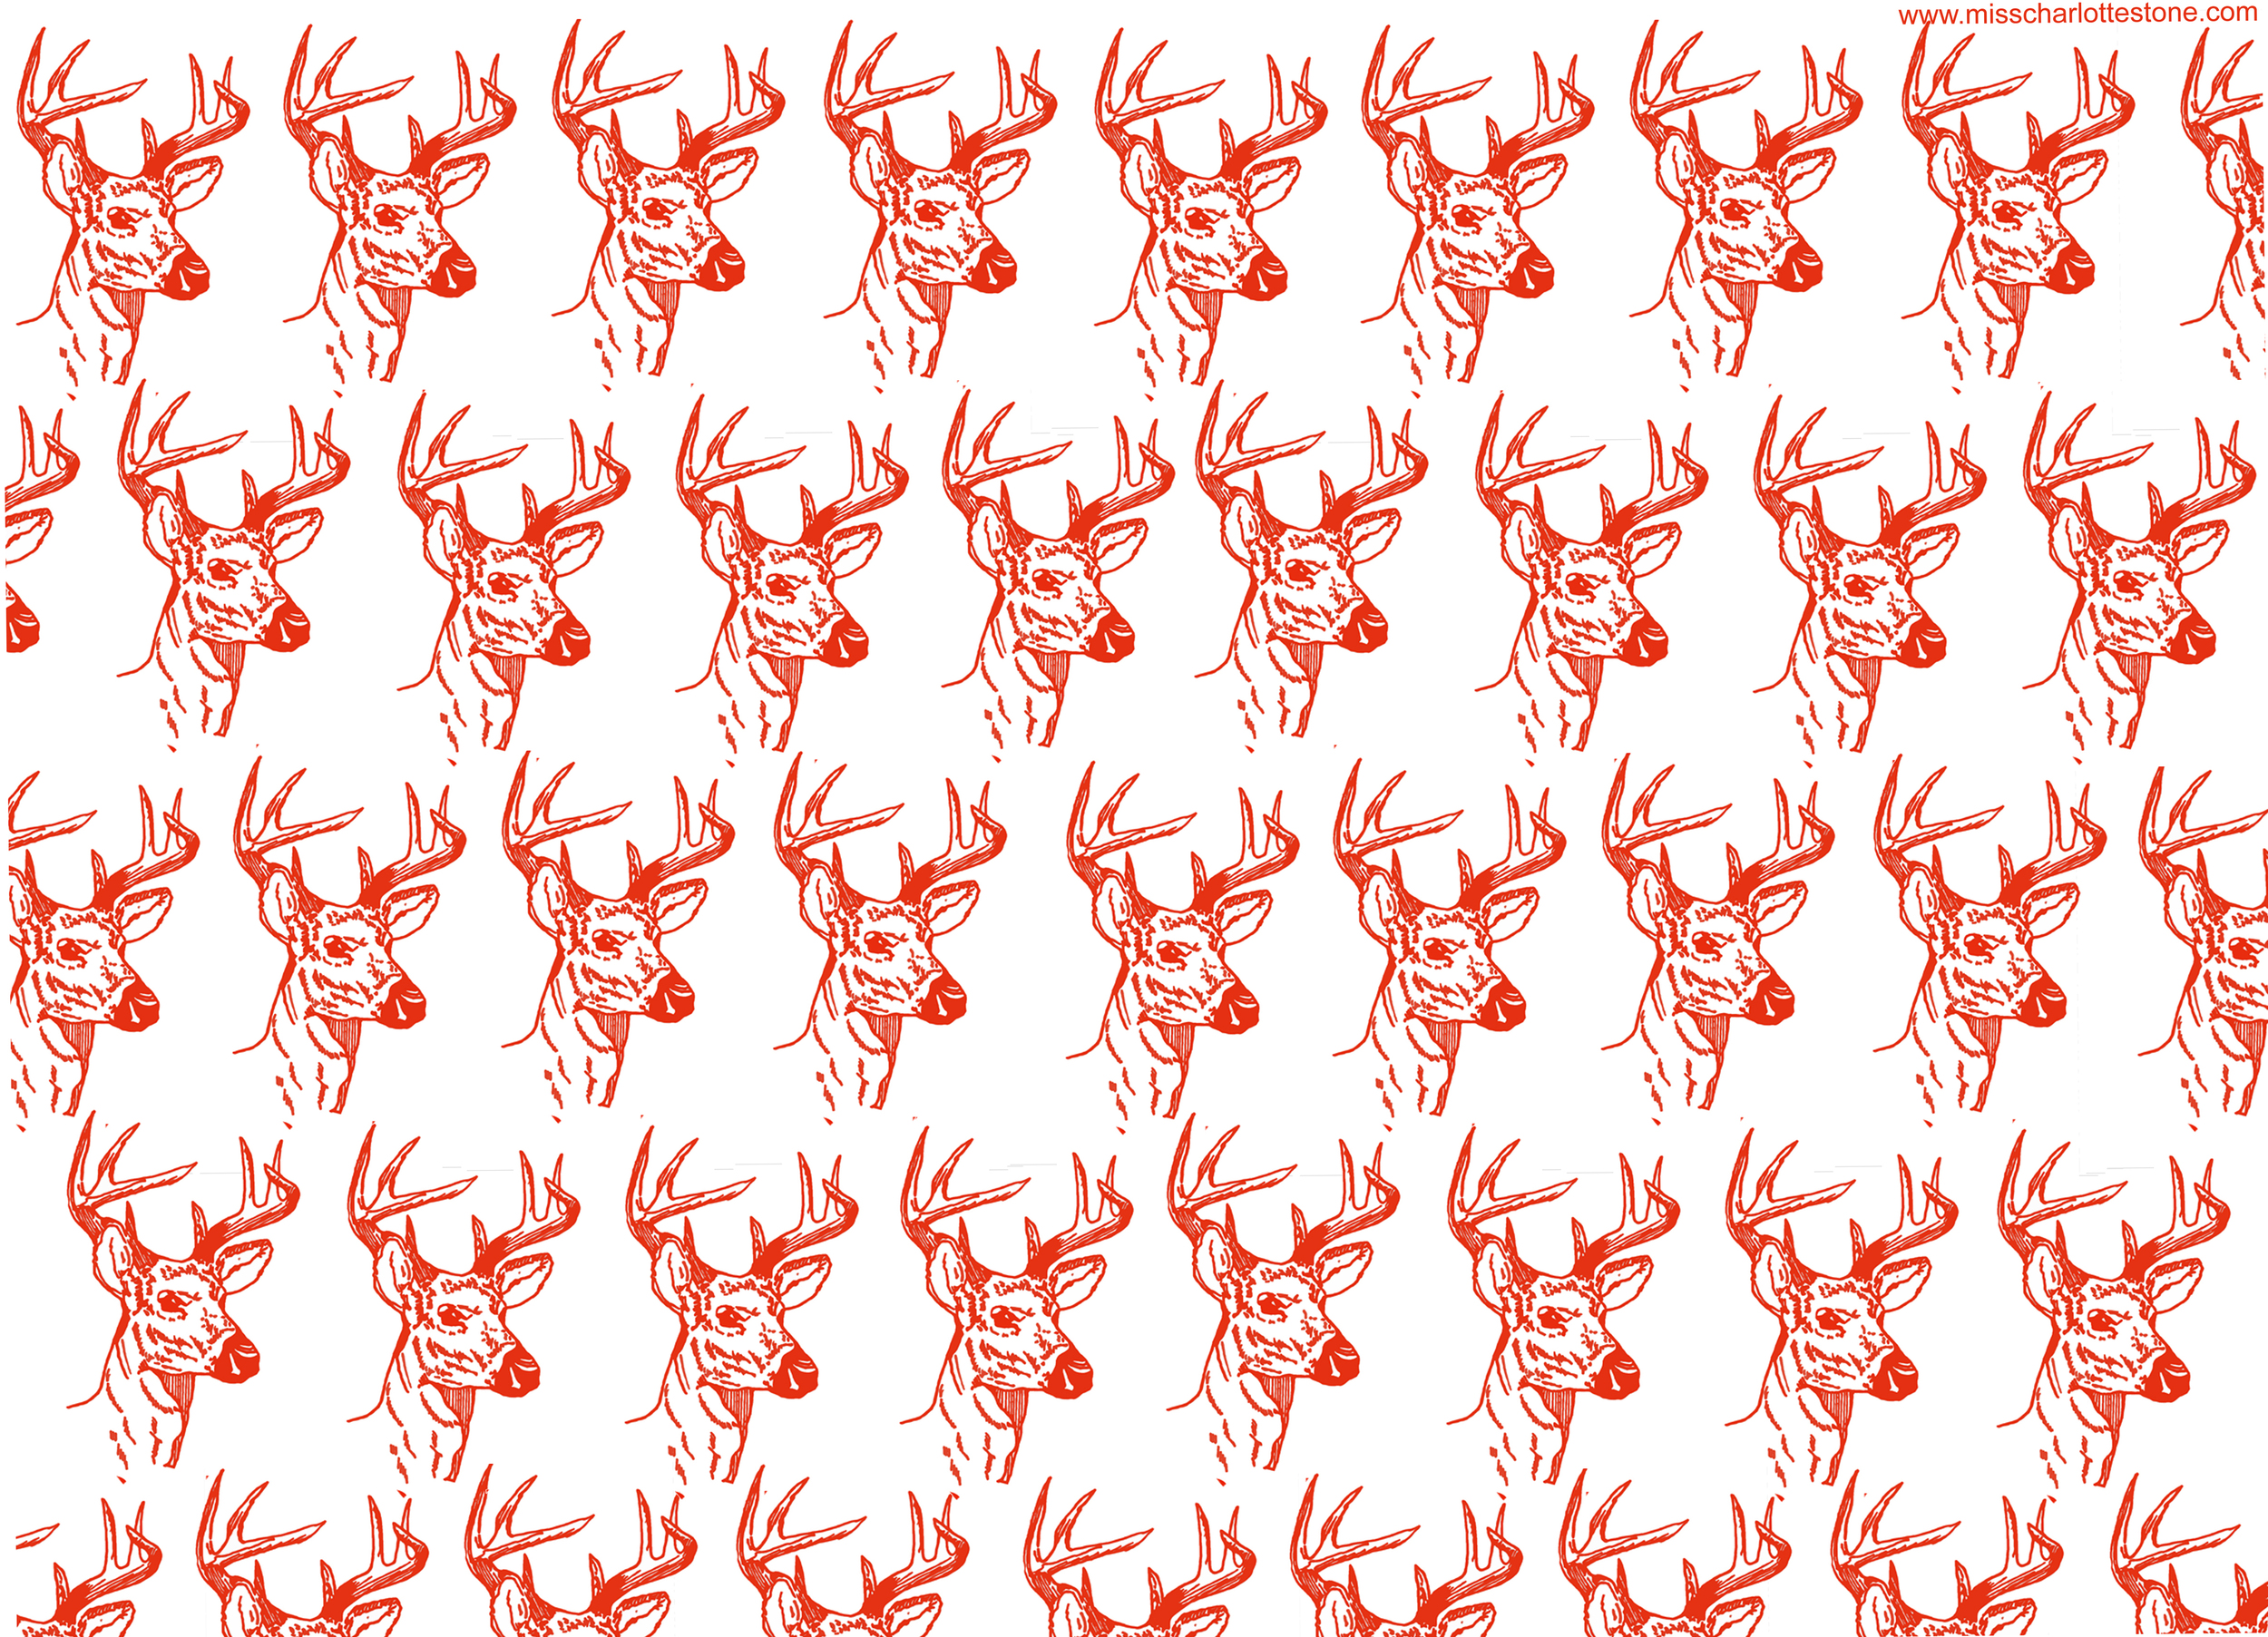 wrapping paper design.jpg